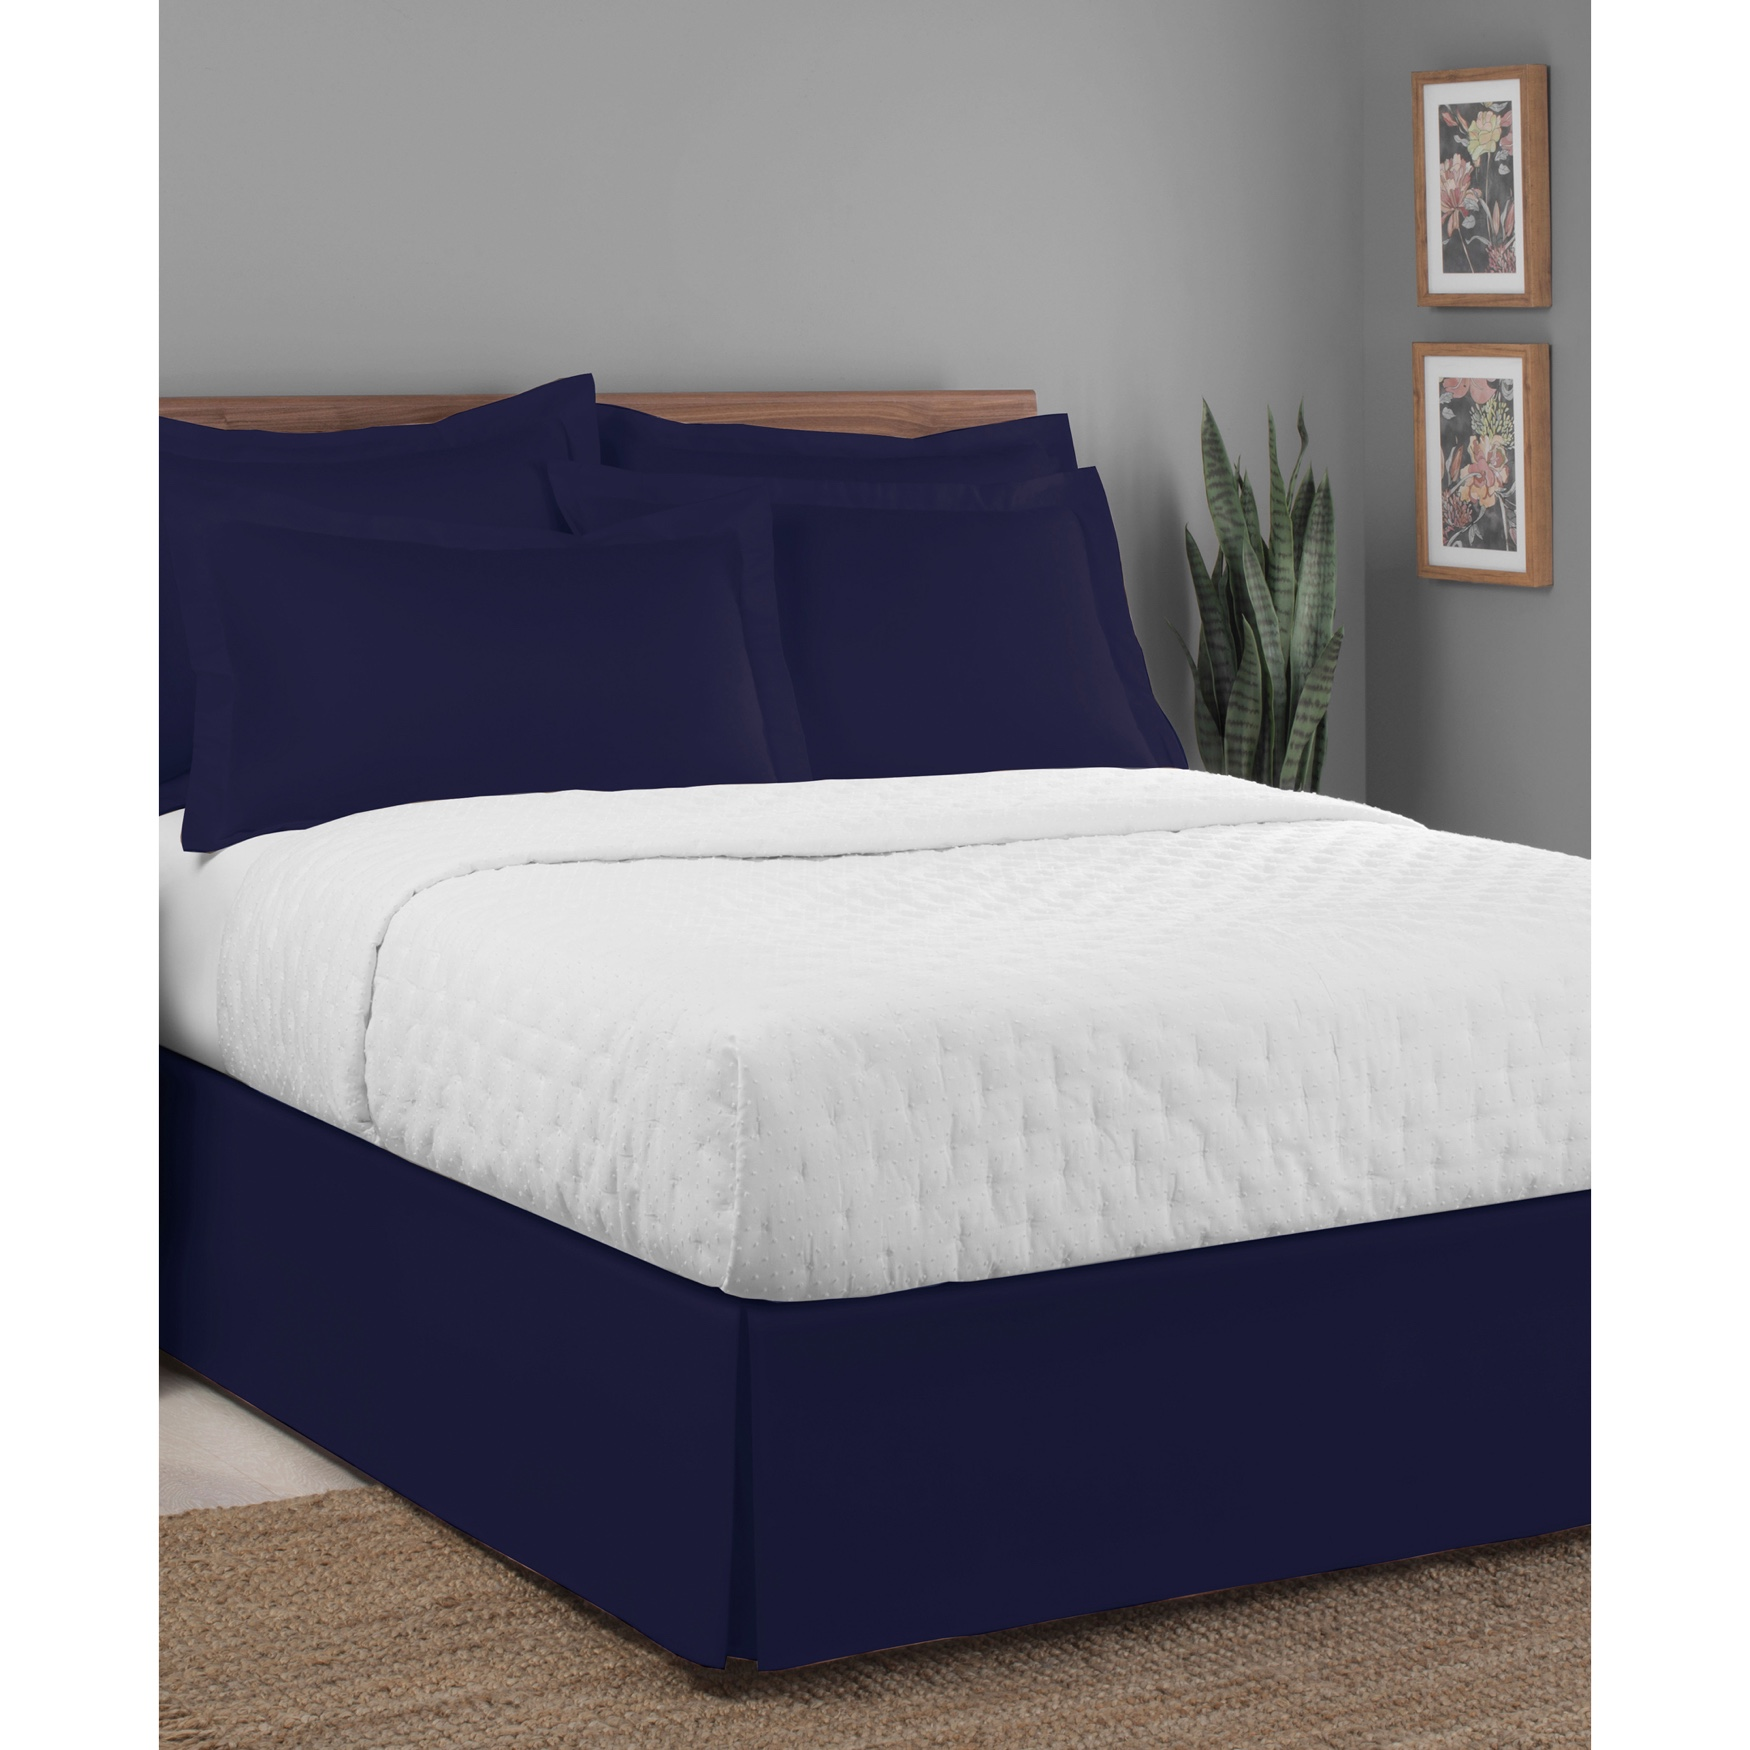 "Luxury Hotel Classic Tailored 14"" Drop Navy Bed Skirt,"